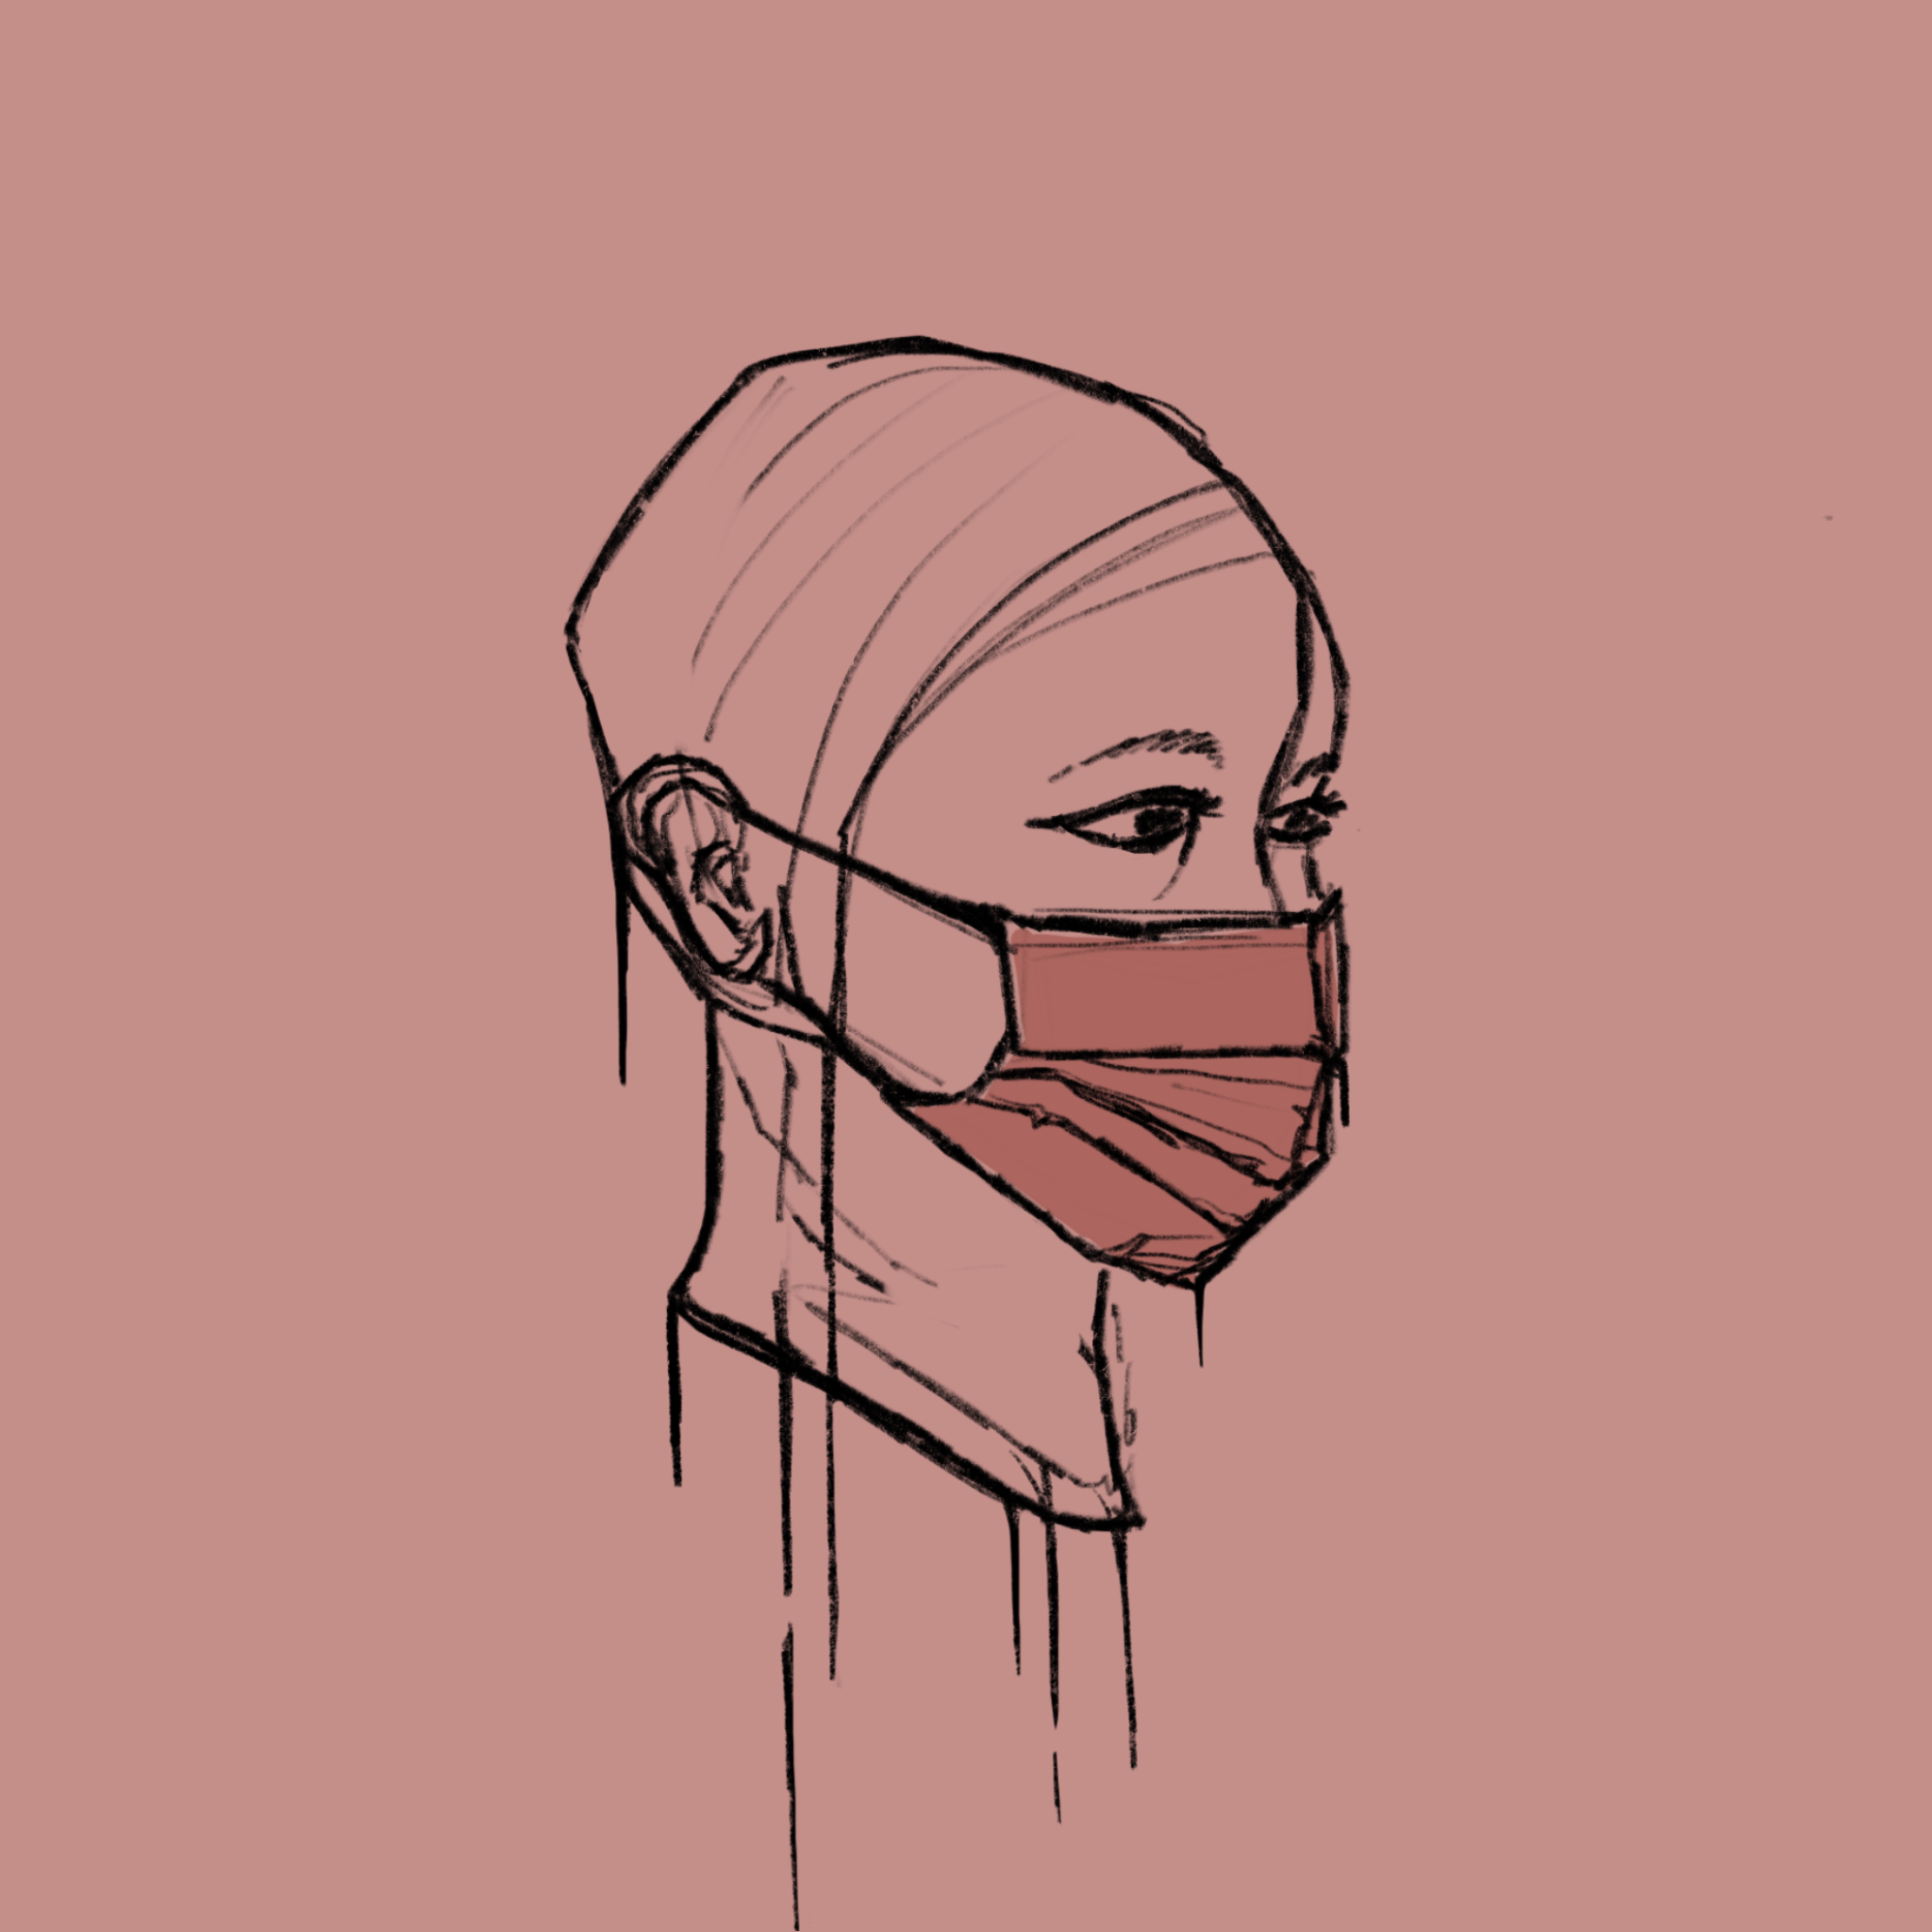 Illustration of a person's head with a mask on